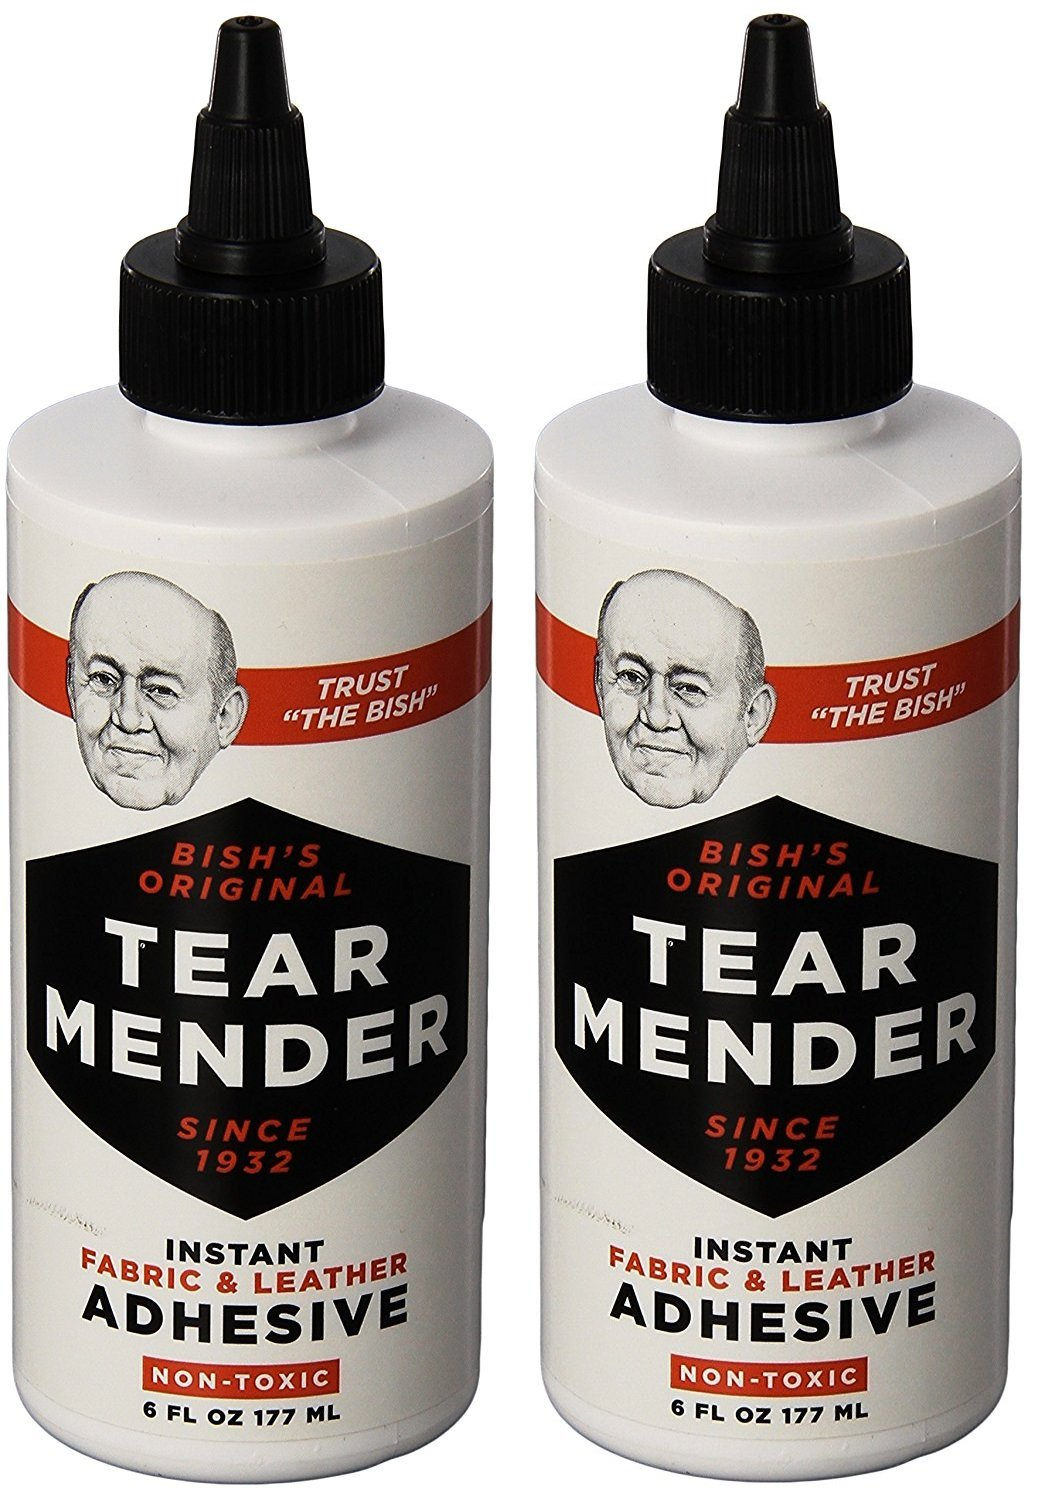 Tear Mender TG-6 Bishs SyGzQO Original Tear Mender Instant Fabric and Leather Adhesive, 6 oz (Pack of 2) by Tear Mender